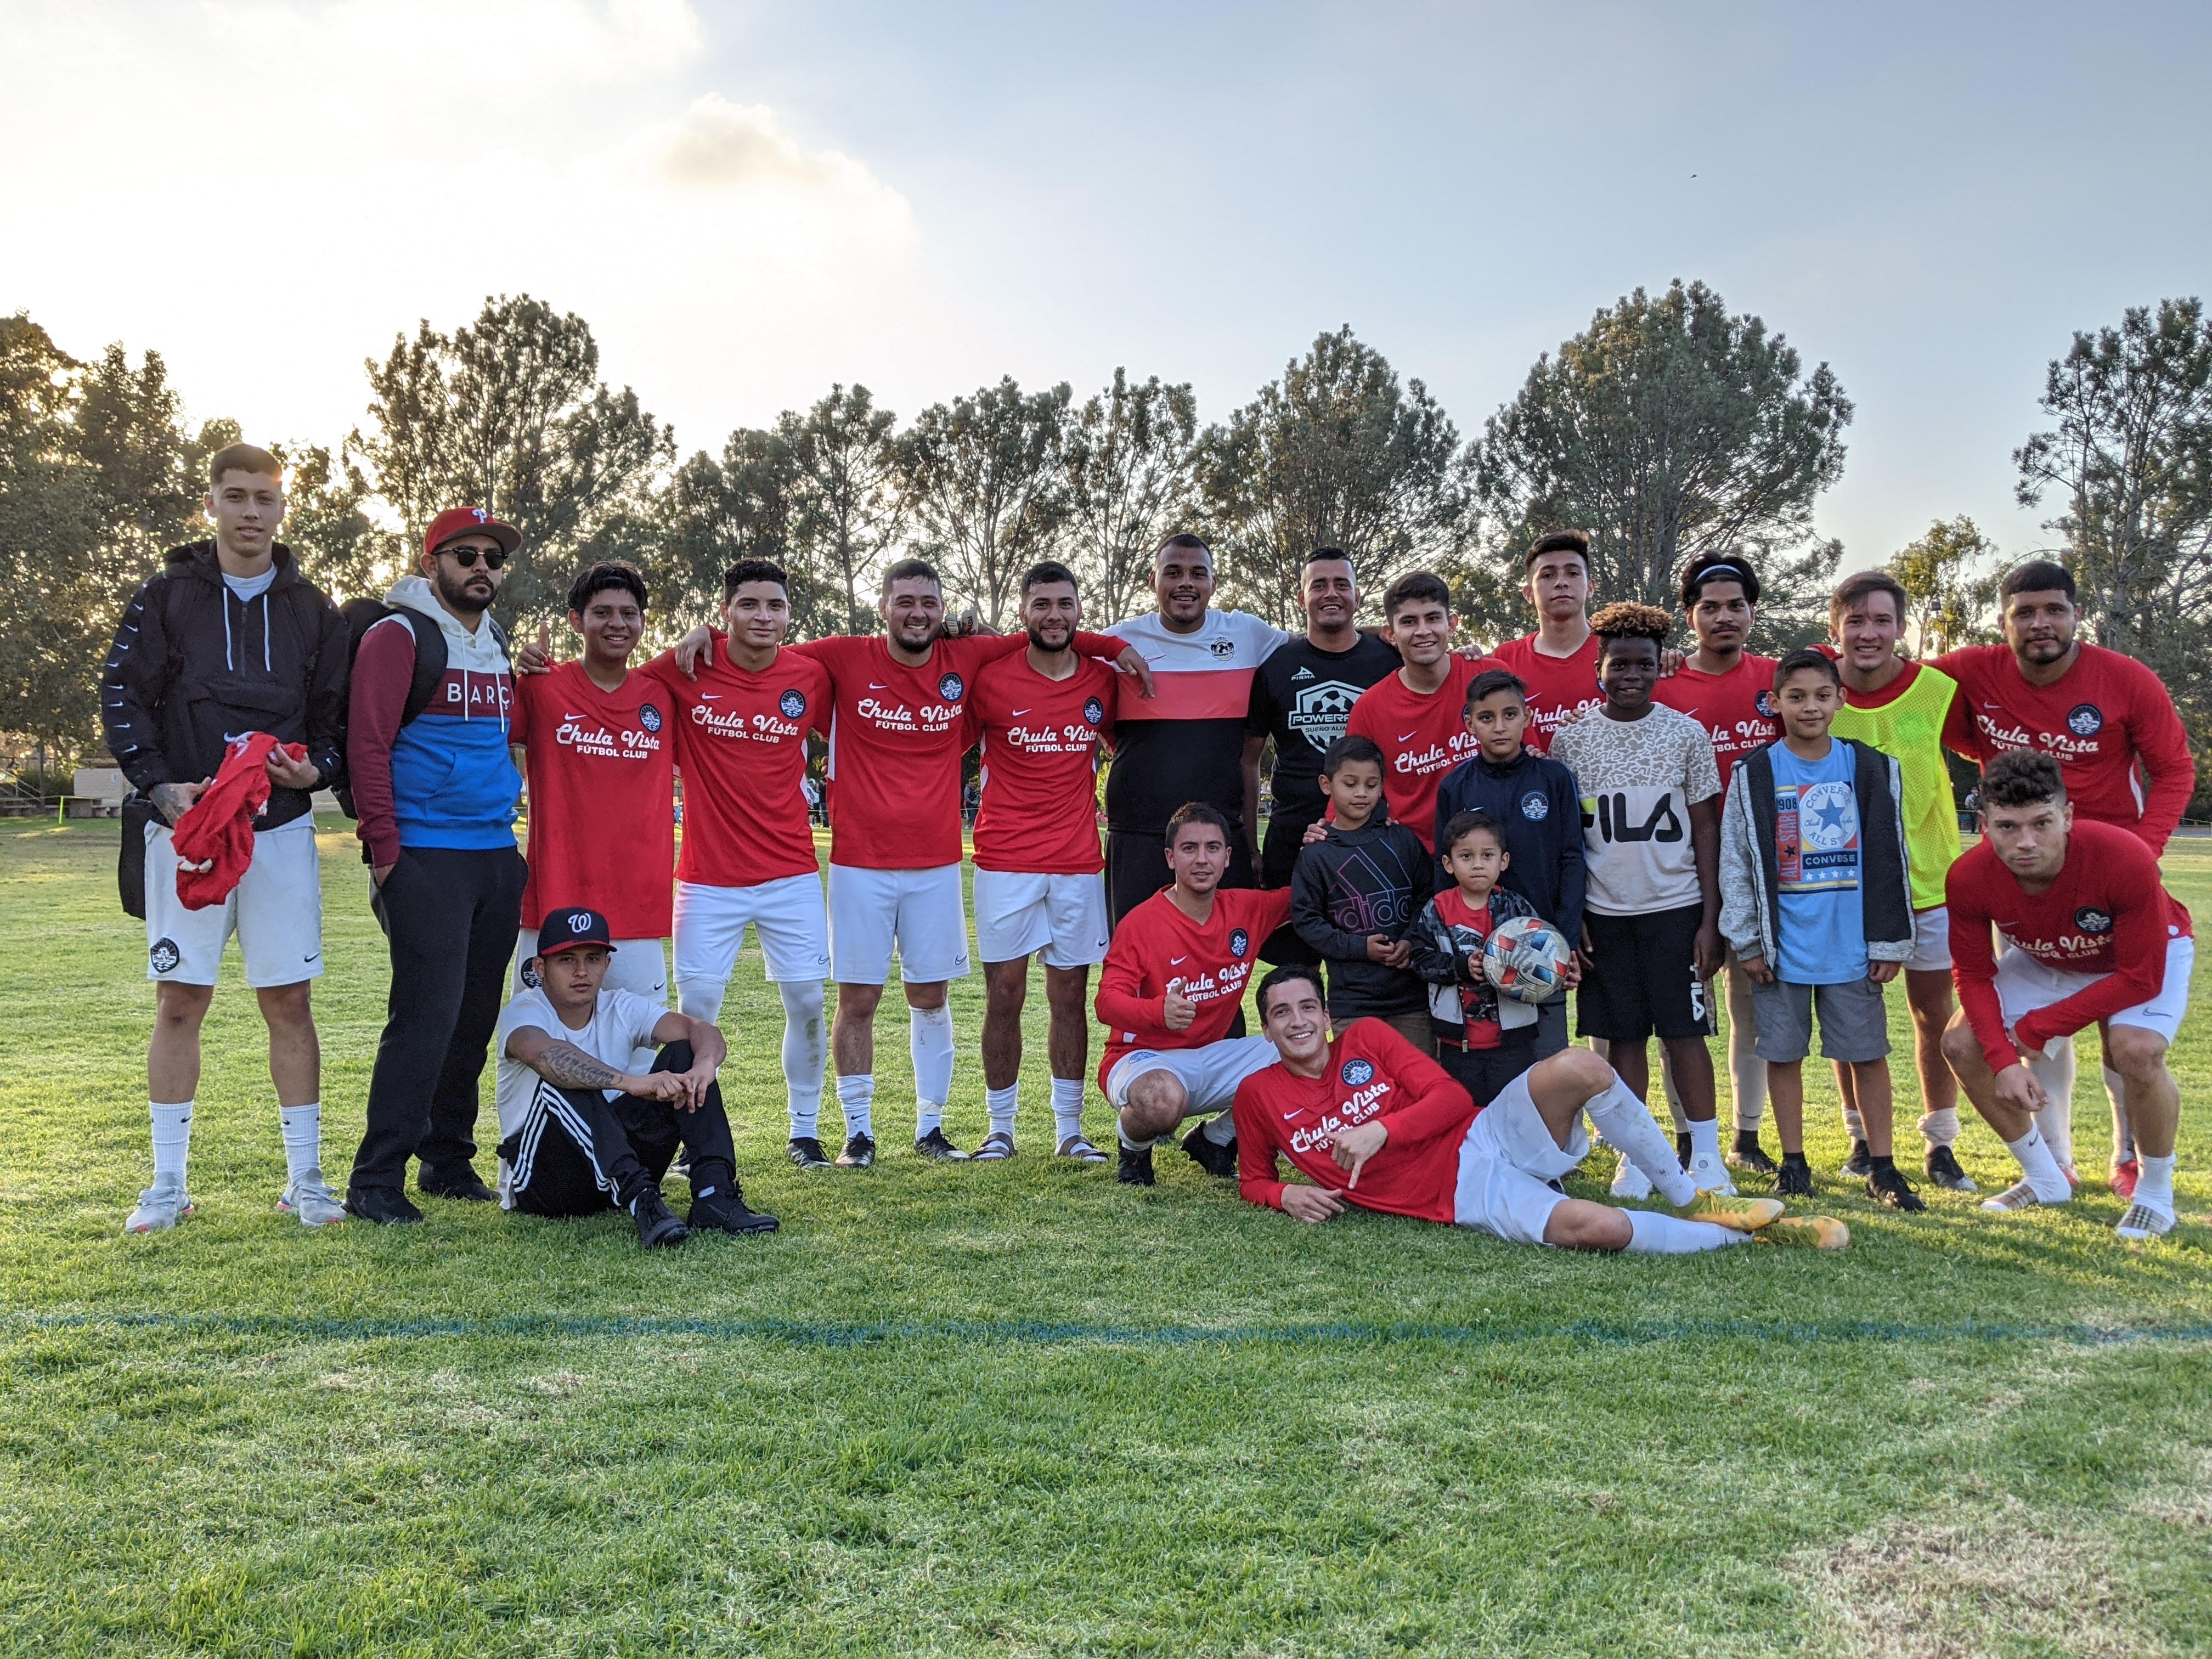 CVFC defeats White Tigers FC to advance to the third qualifying round for 2022 Lamar Hunt U.S. Open Cup